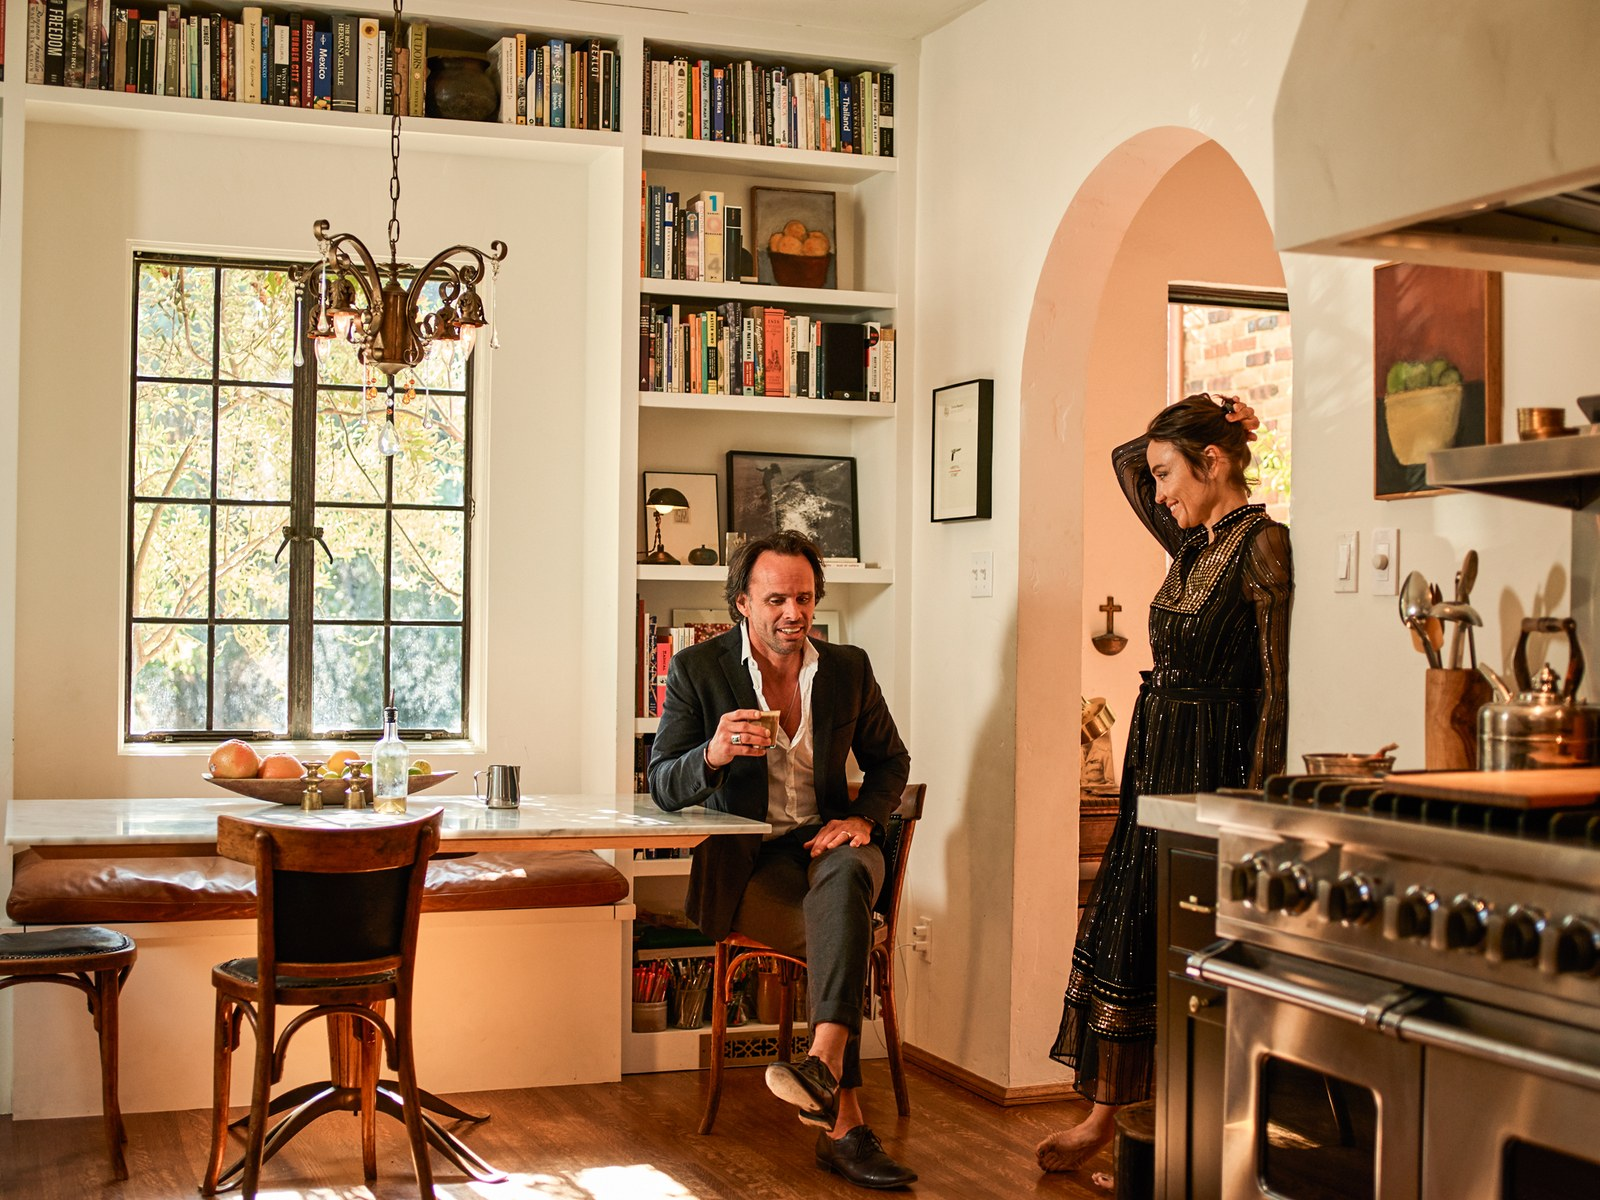 Nadia Conners and her partner Walton Goggins at their house in Los Angeles.